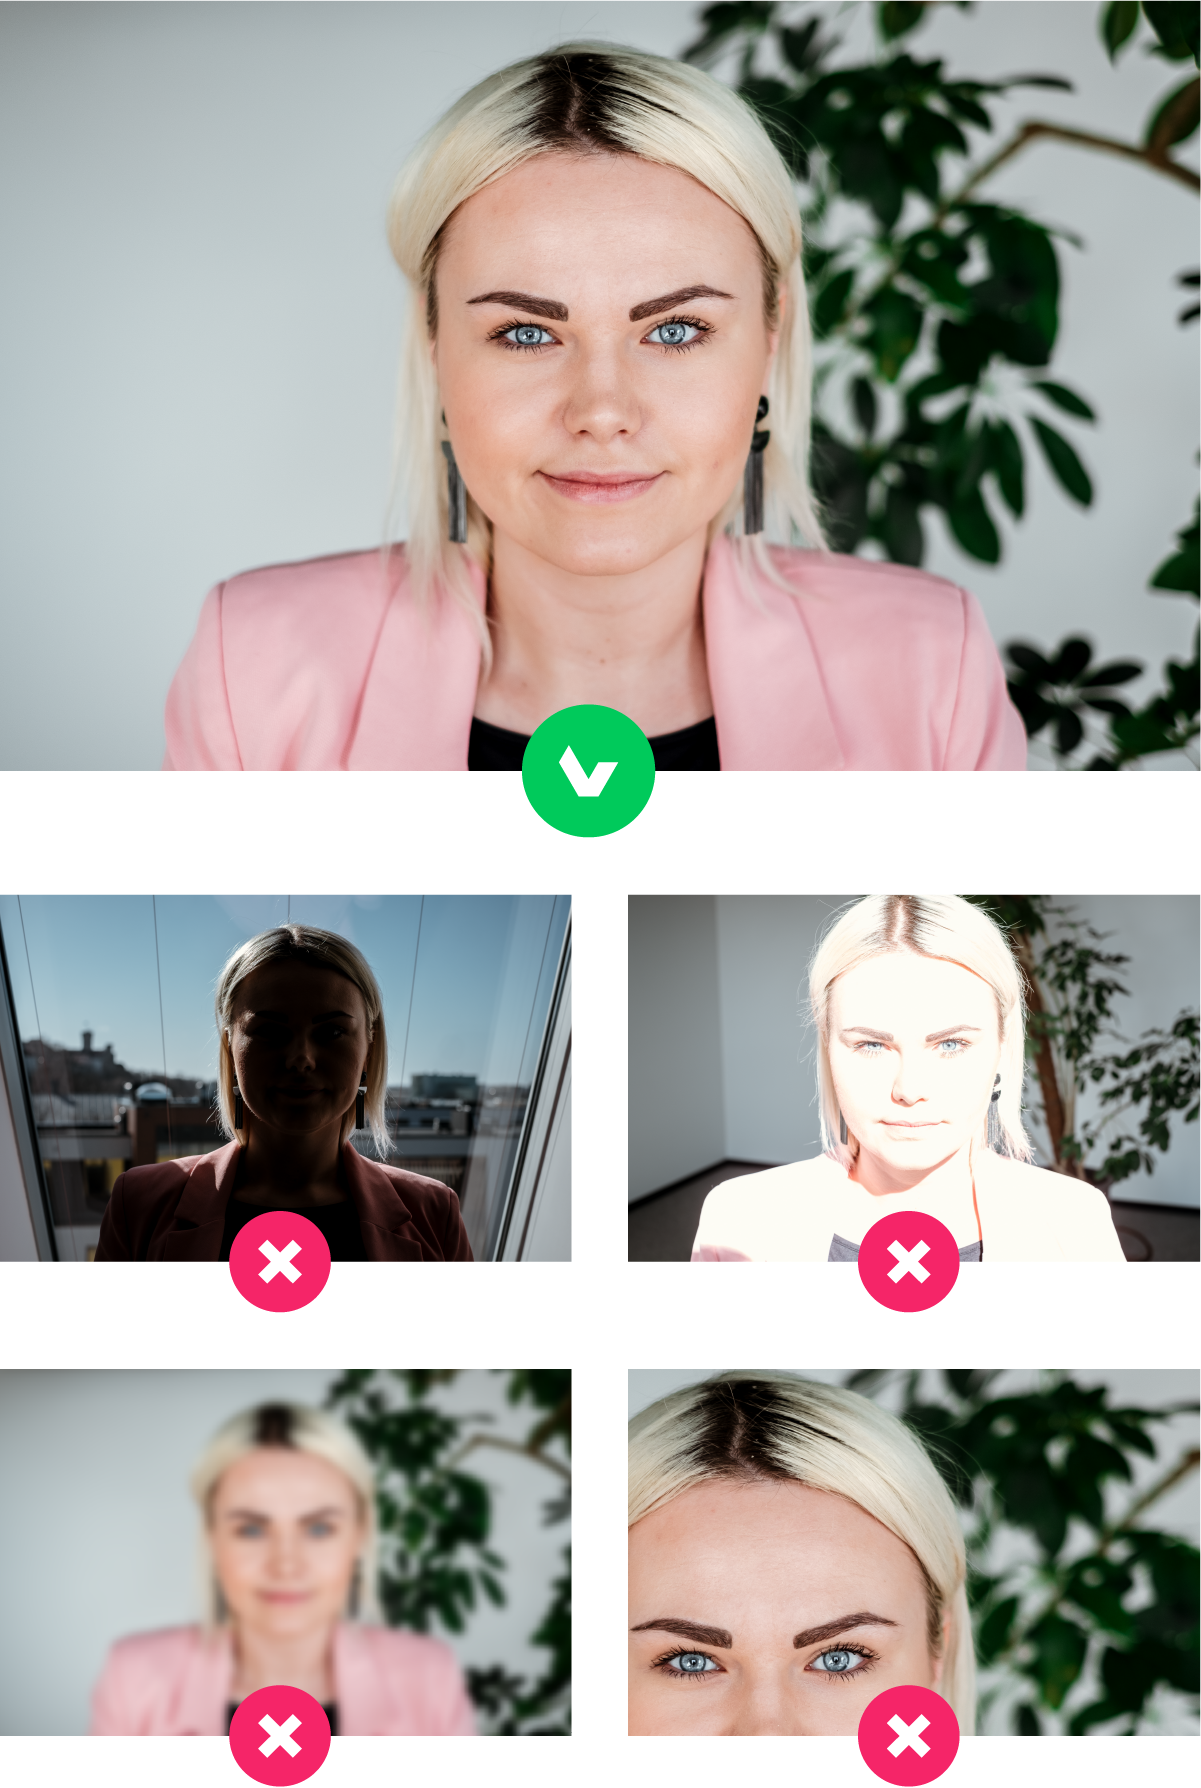 Photos with good lighting are needed to verify your identity